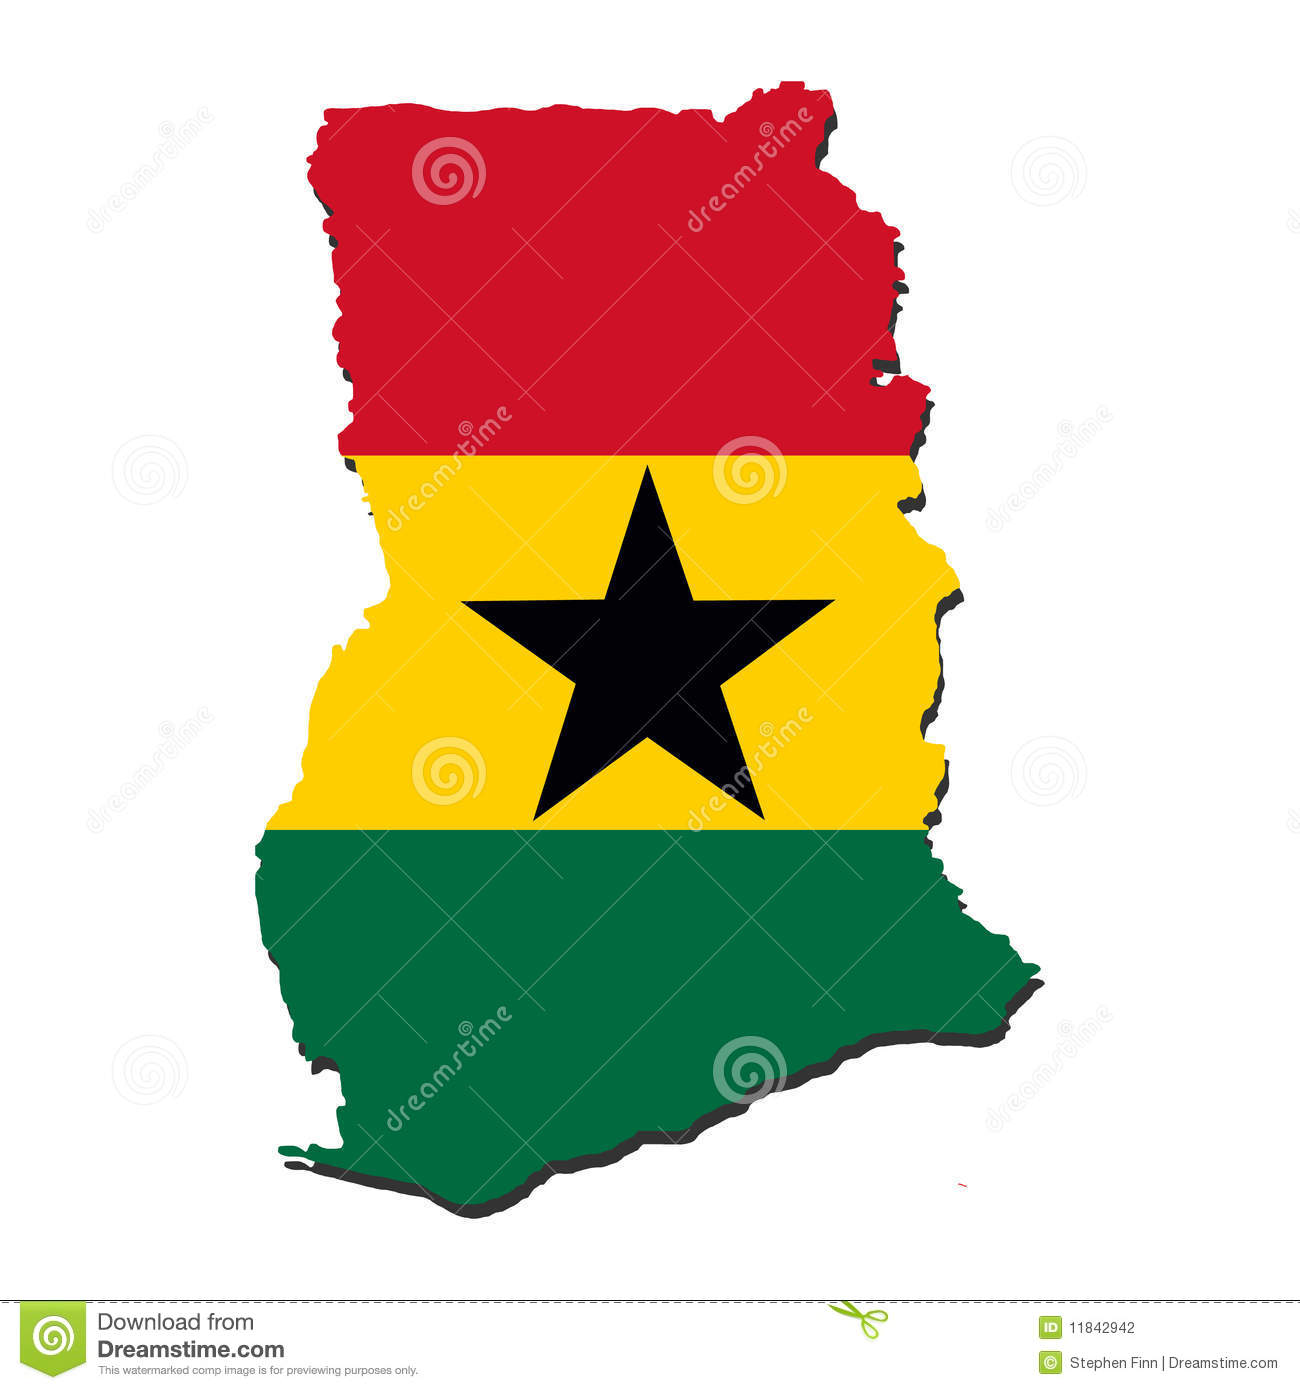 Ghana map flag stock vector. Illustration of illustration - 11842942